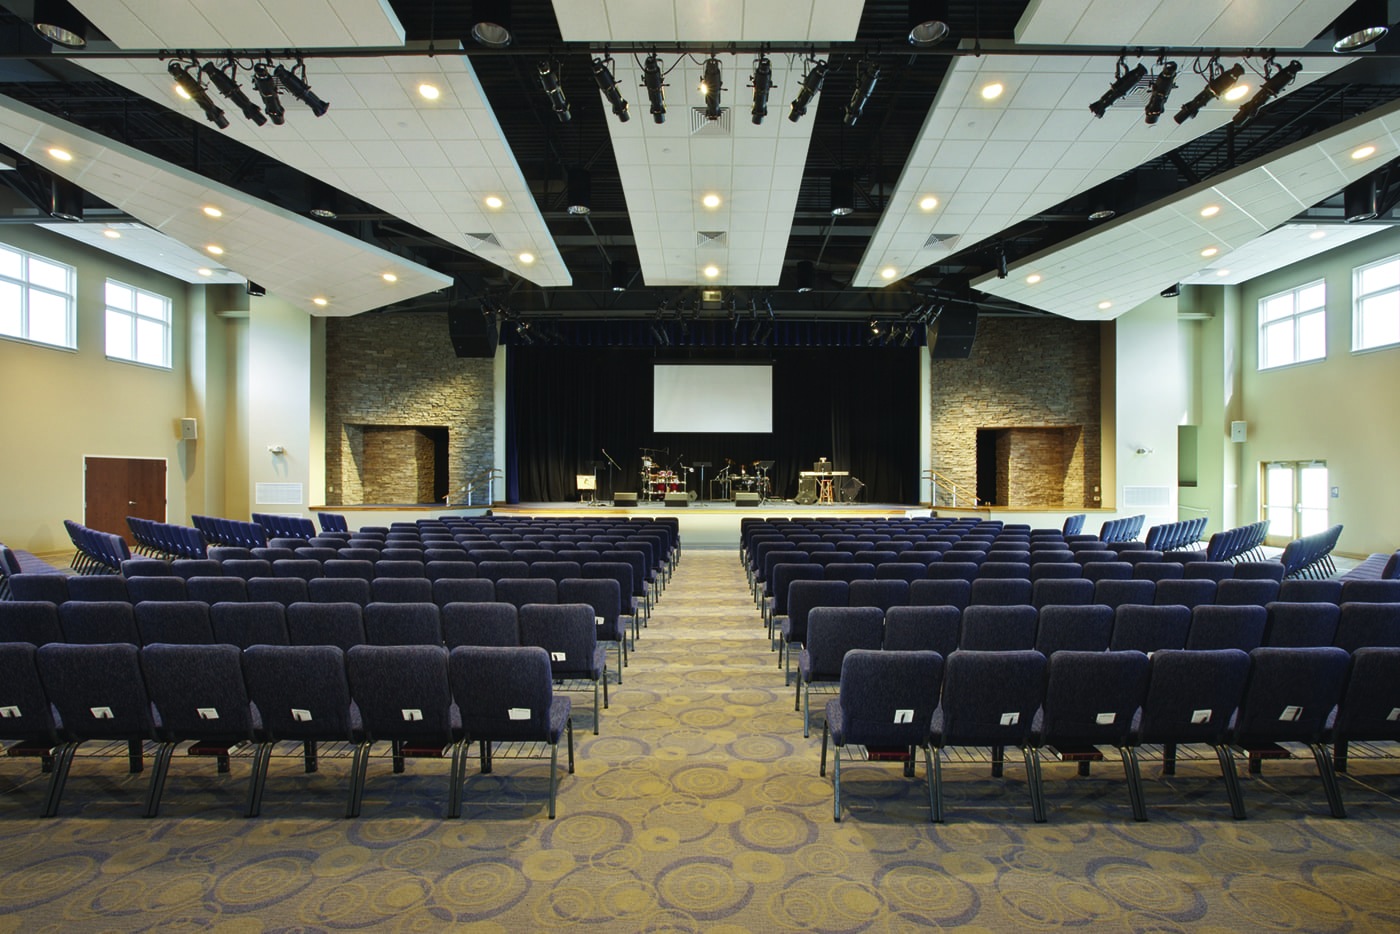 Willowdale Chapel Worship Center And Classroom Addition